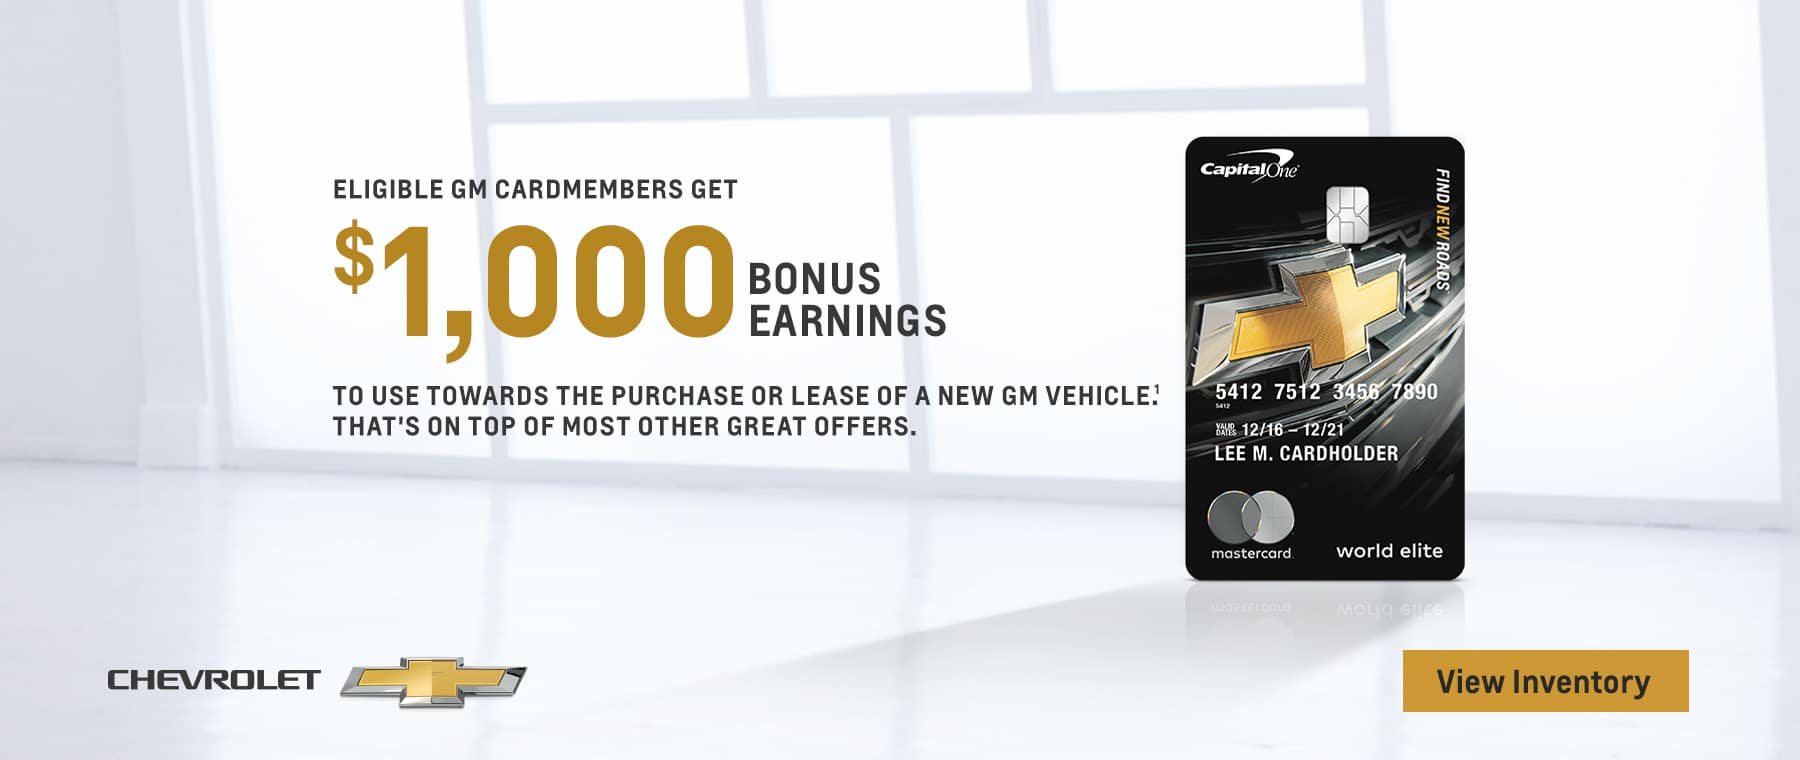 ELIGIBLE GM CARDMEMBERS GET $1,000 BONUS EARNING TO USE TOWARDS THE PURCHASE OF LEASE OF A NEW GM VEHICLE. THATS ON TOP OF MOST OTHER GREAT OFFERS